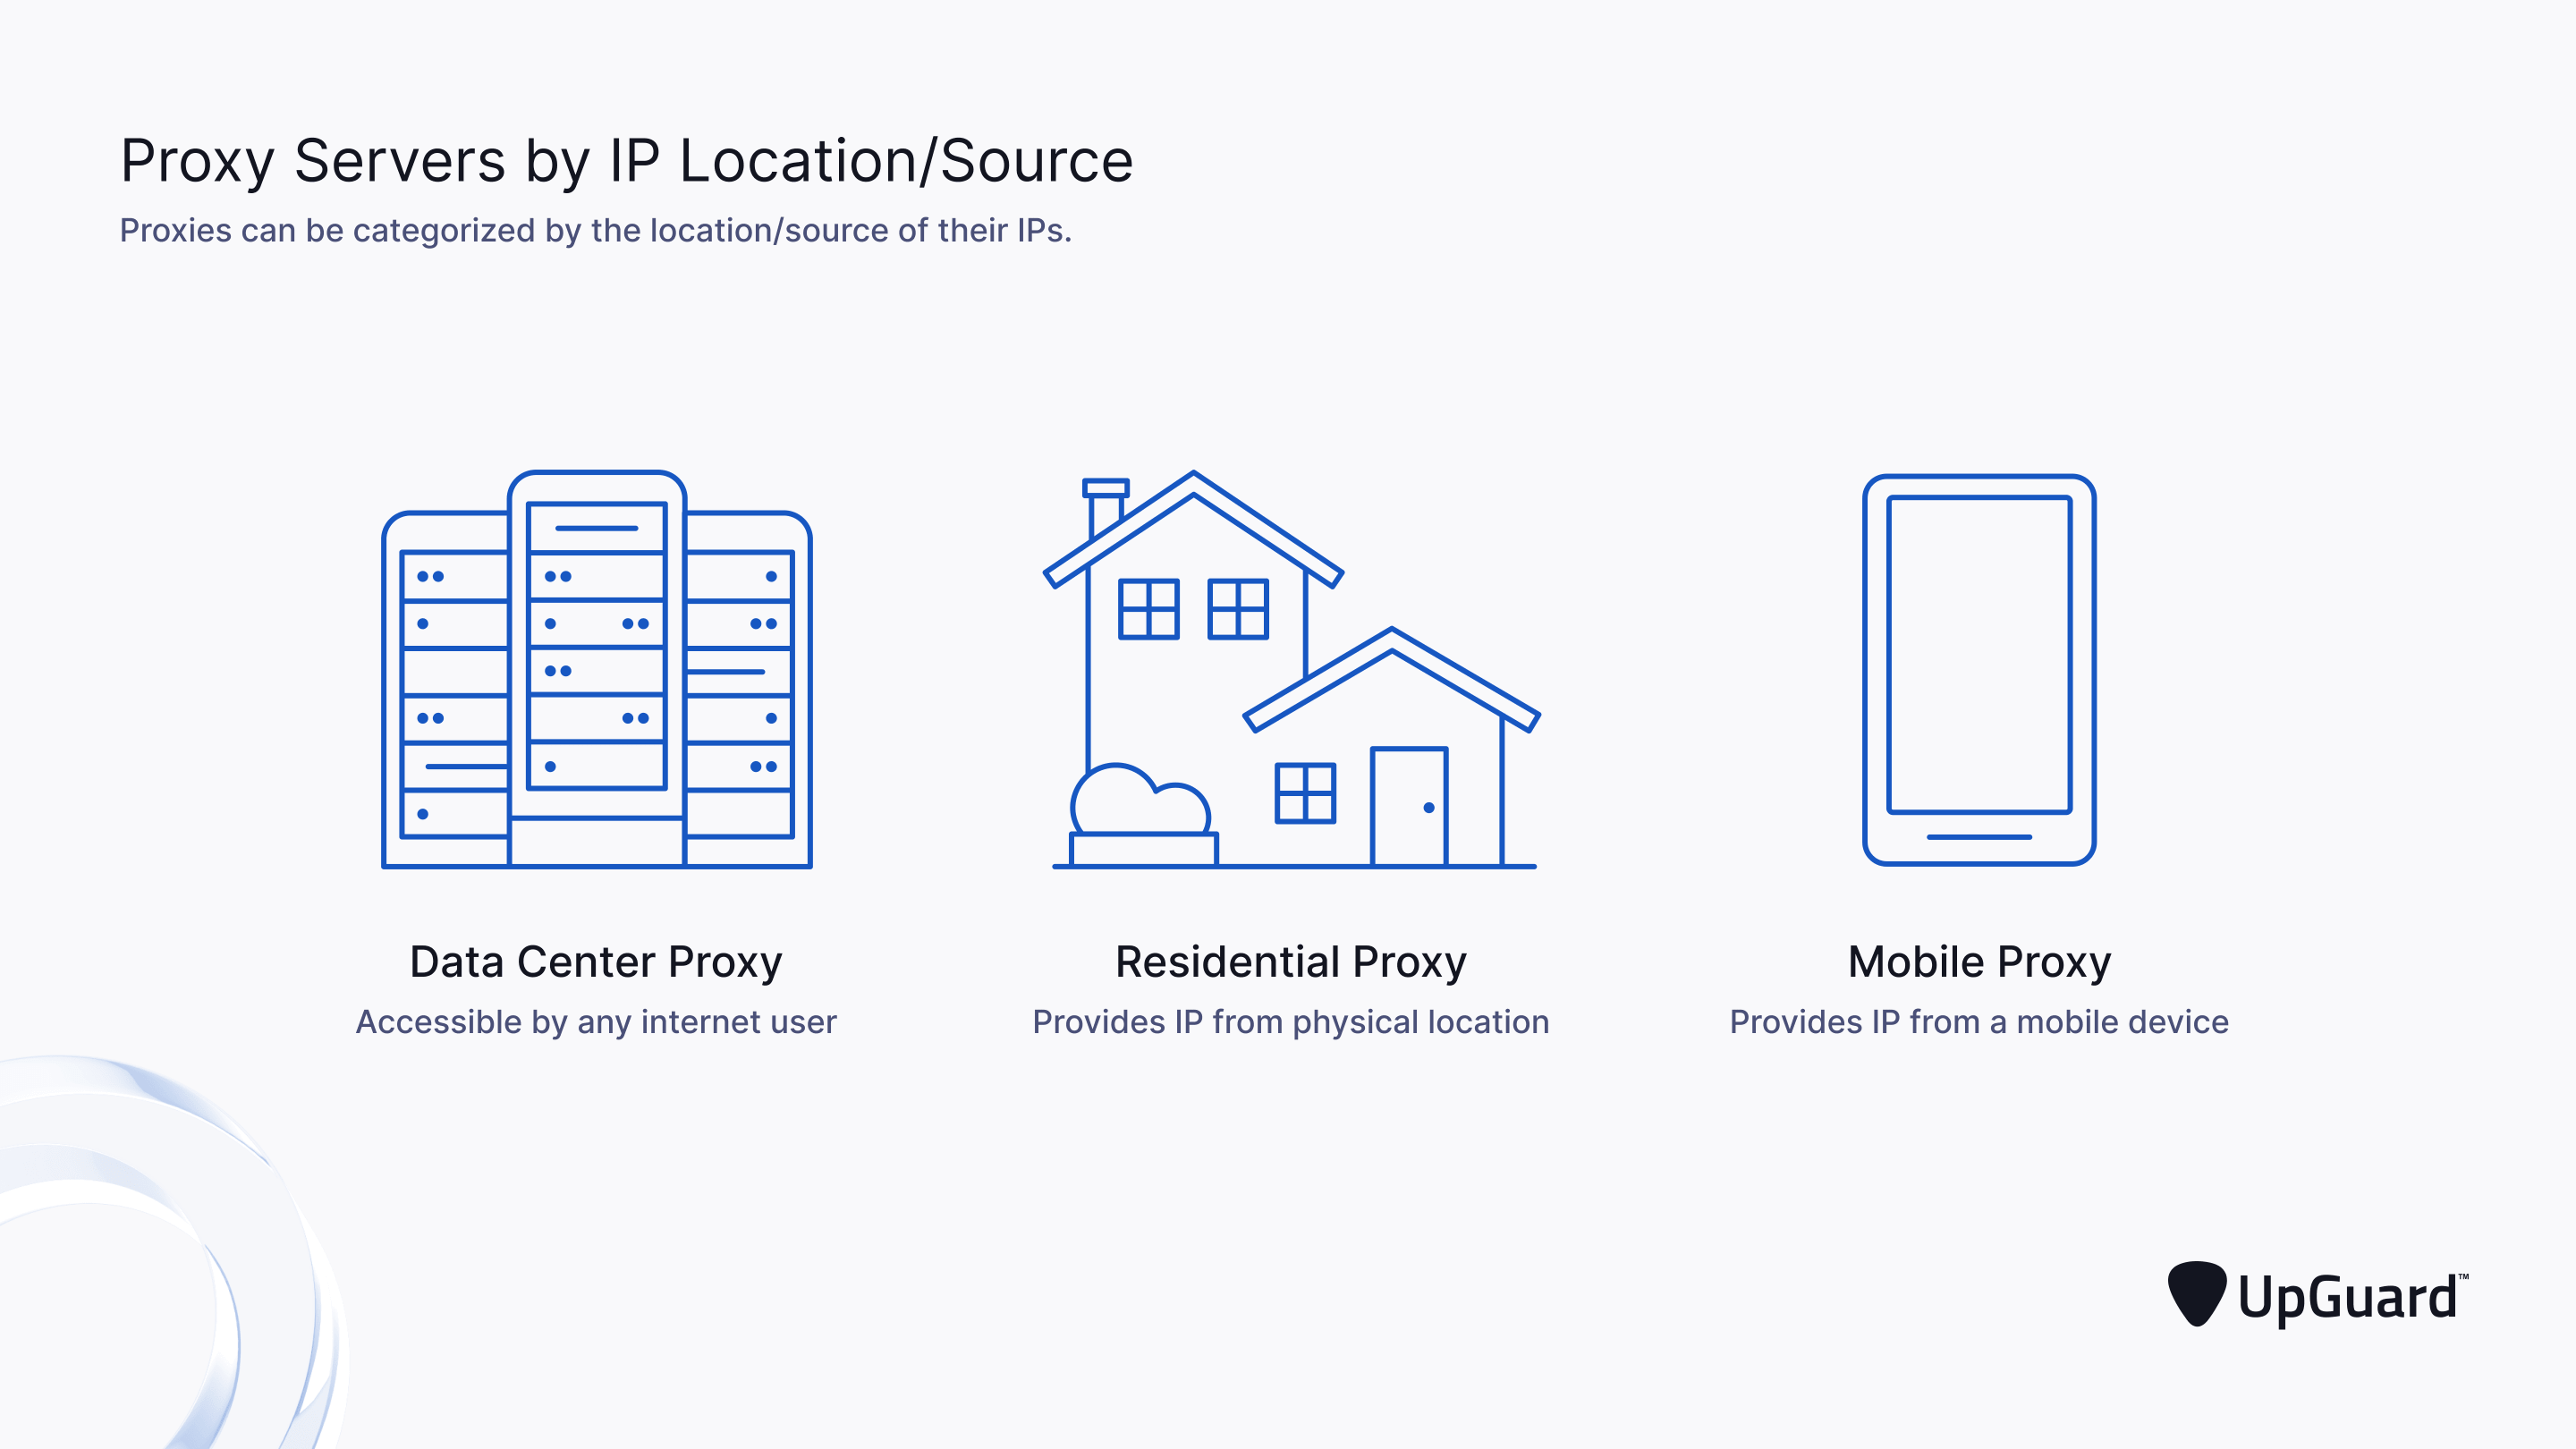 Proxy Servers by IP Location/Source